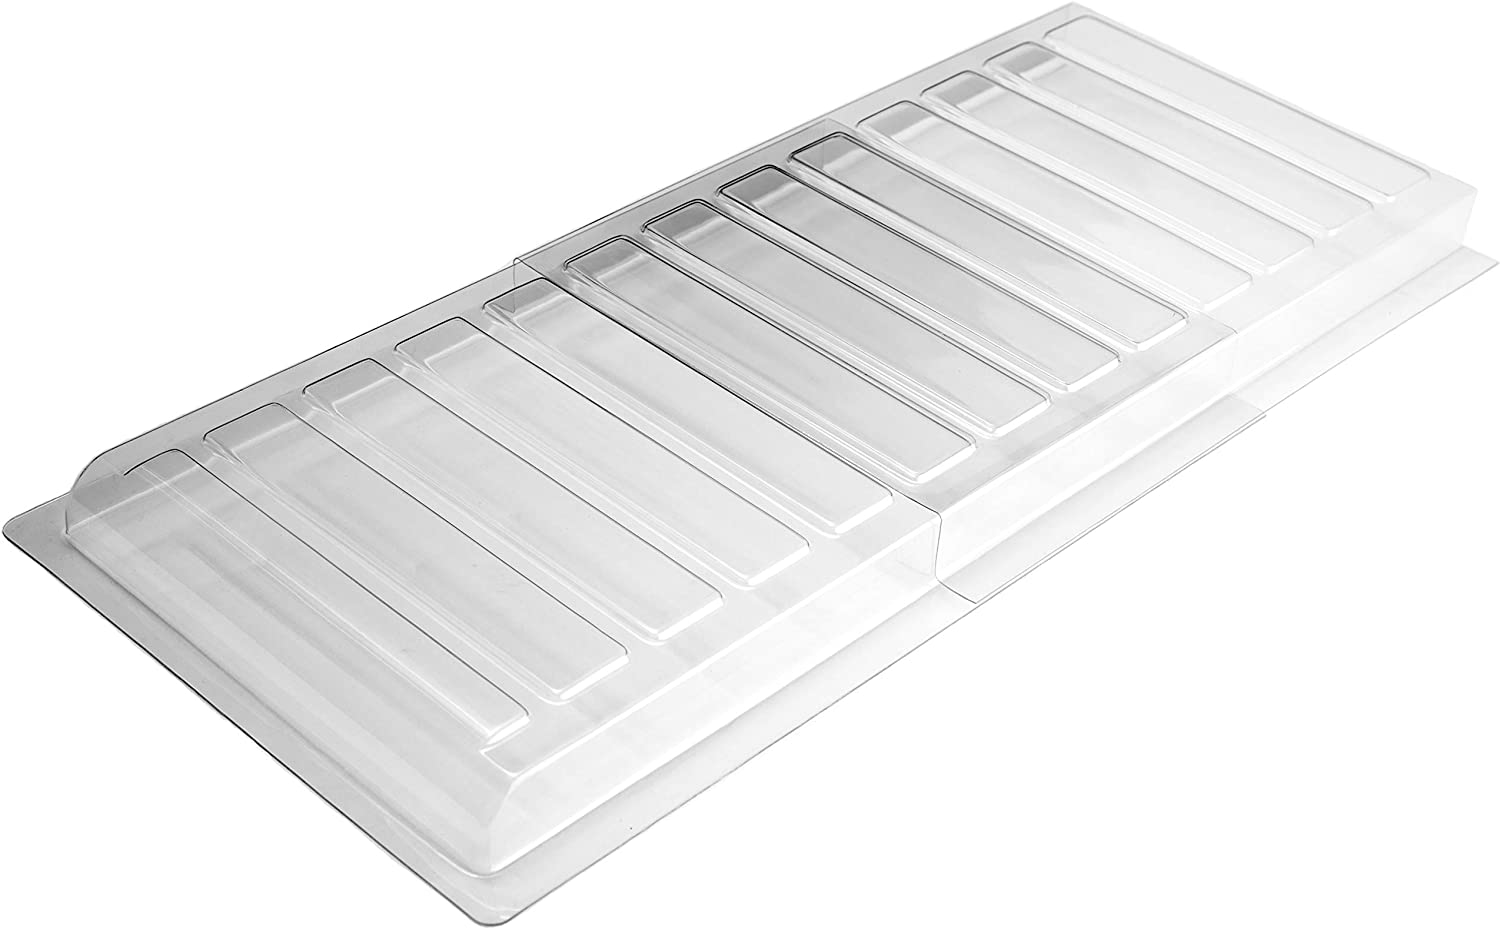 "Ventilaider Air Vent Extender for Under Furniture, Includes Installation Tapes, Improved Stronger Plastic Material, Fits Floor Registers Up to 11"" Wide, Extends from 17""-30"""